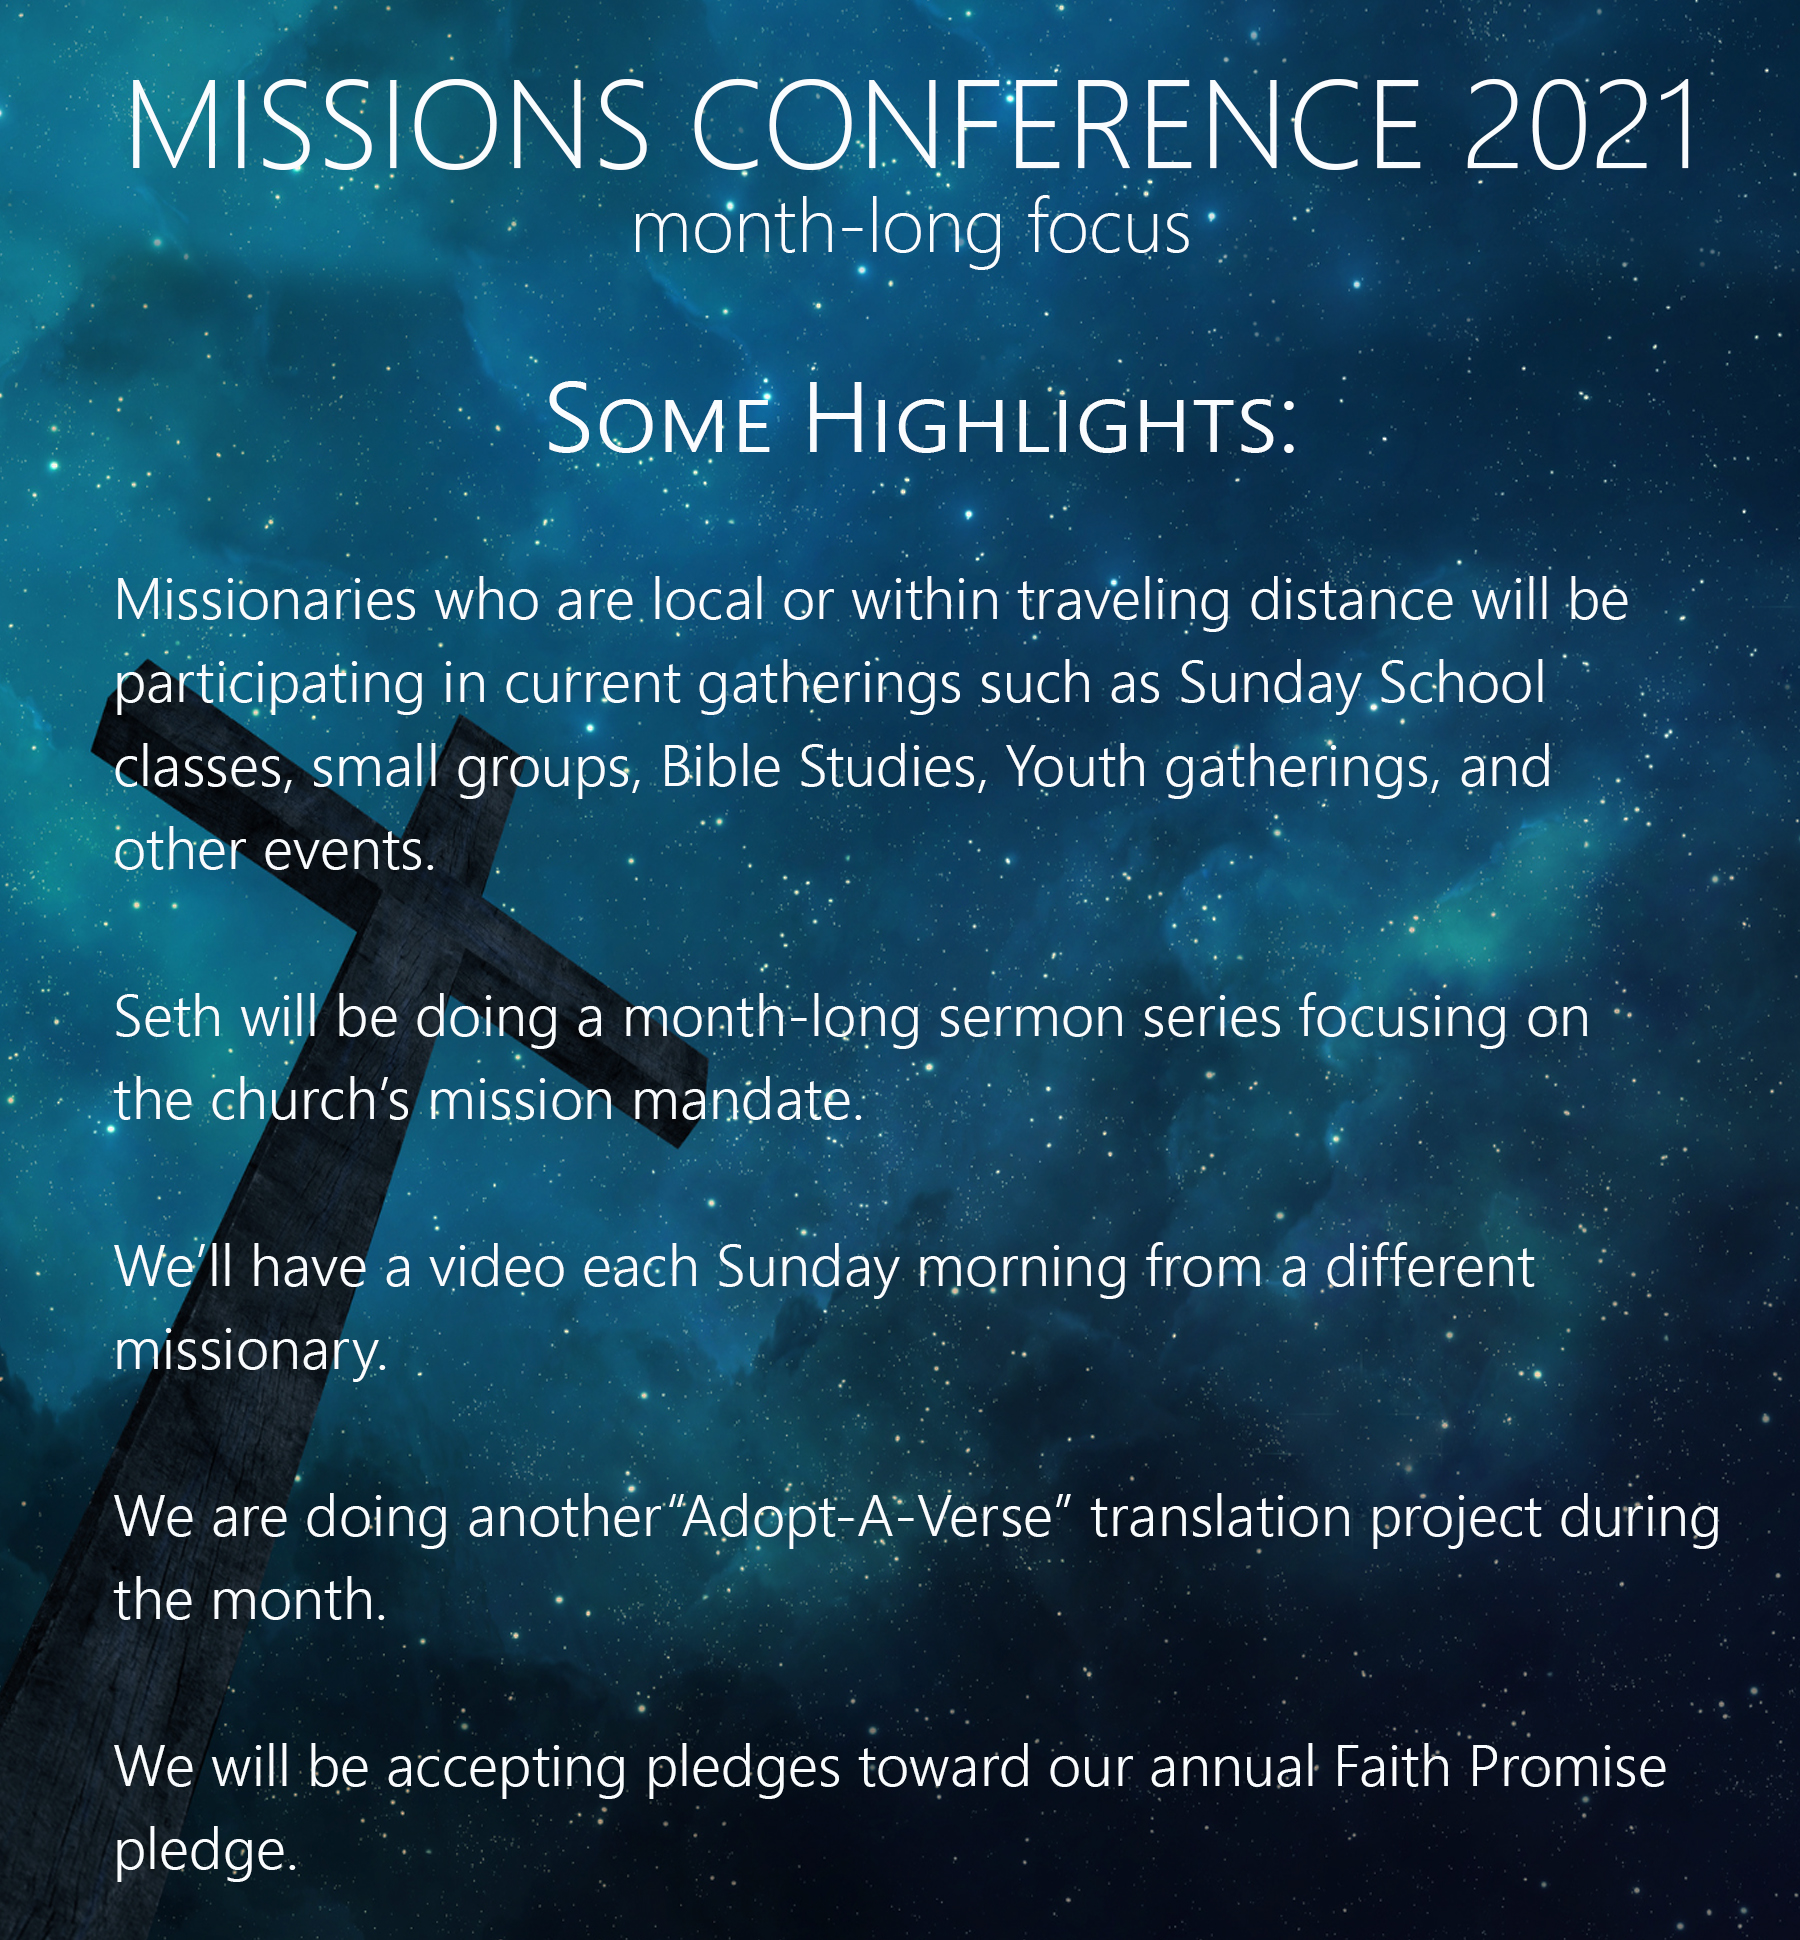 missions llist highlights